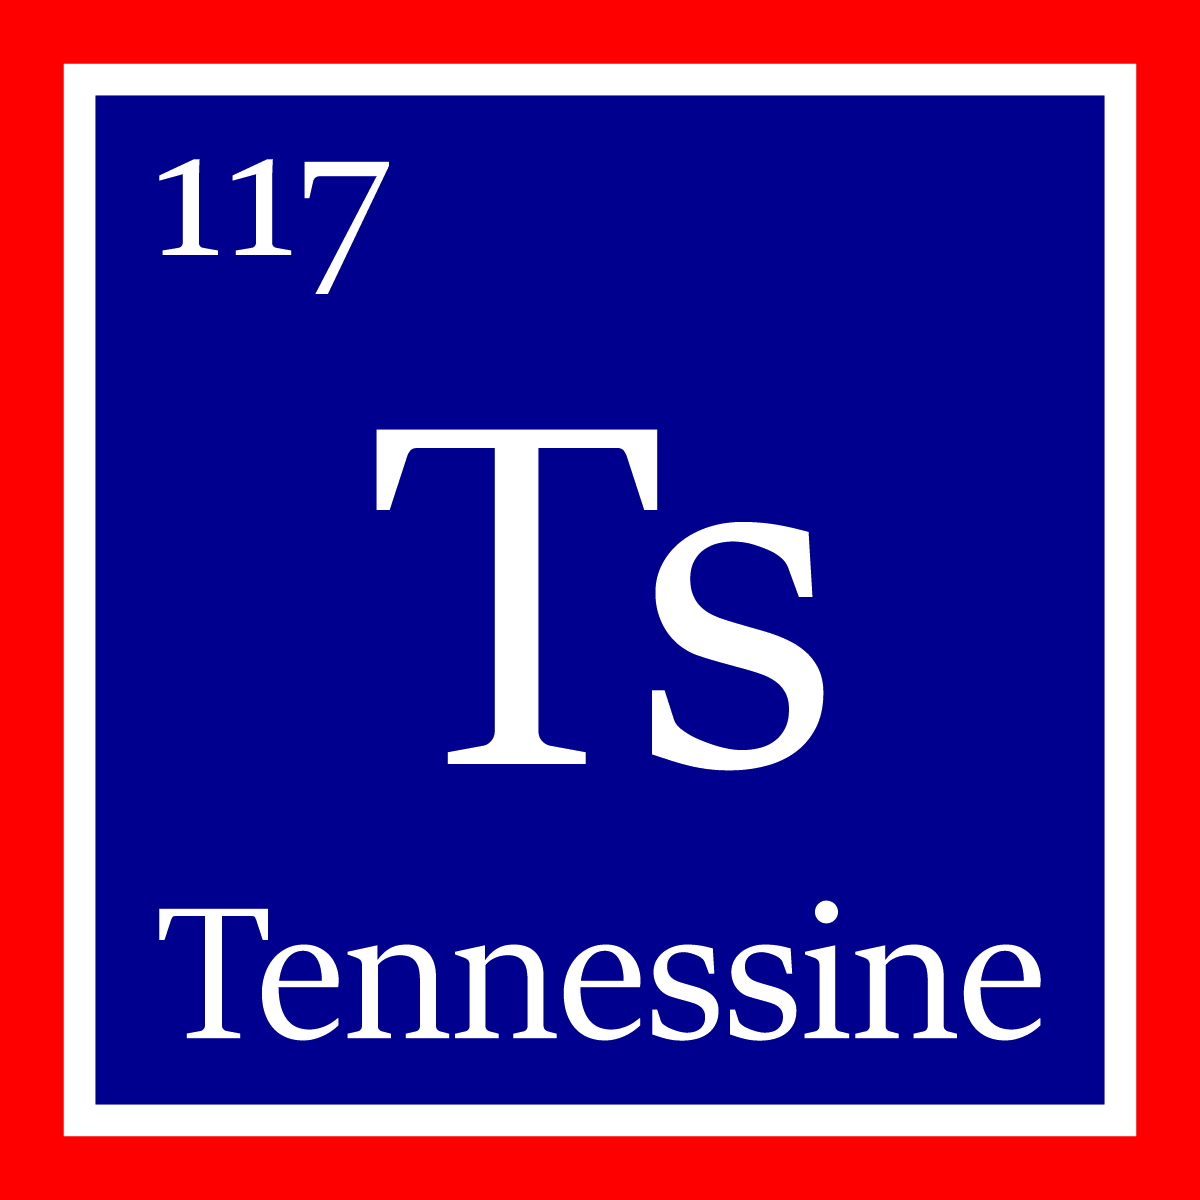 Tennessine element 117 officially named the new element tennessine is denoted by the symbol ts on the periodic table credit ornl urtaz Gallery